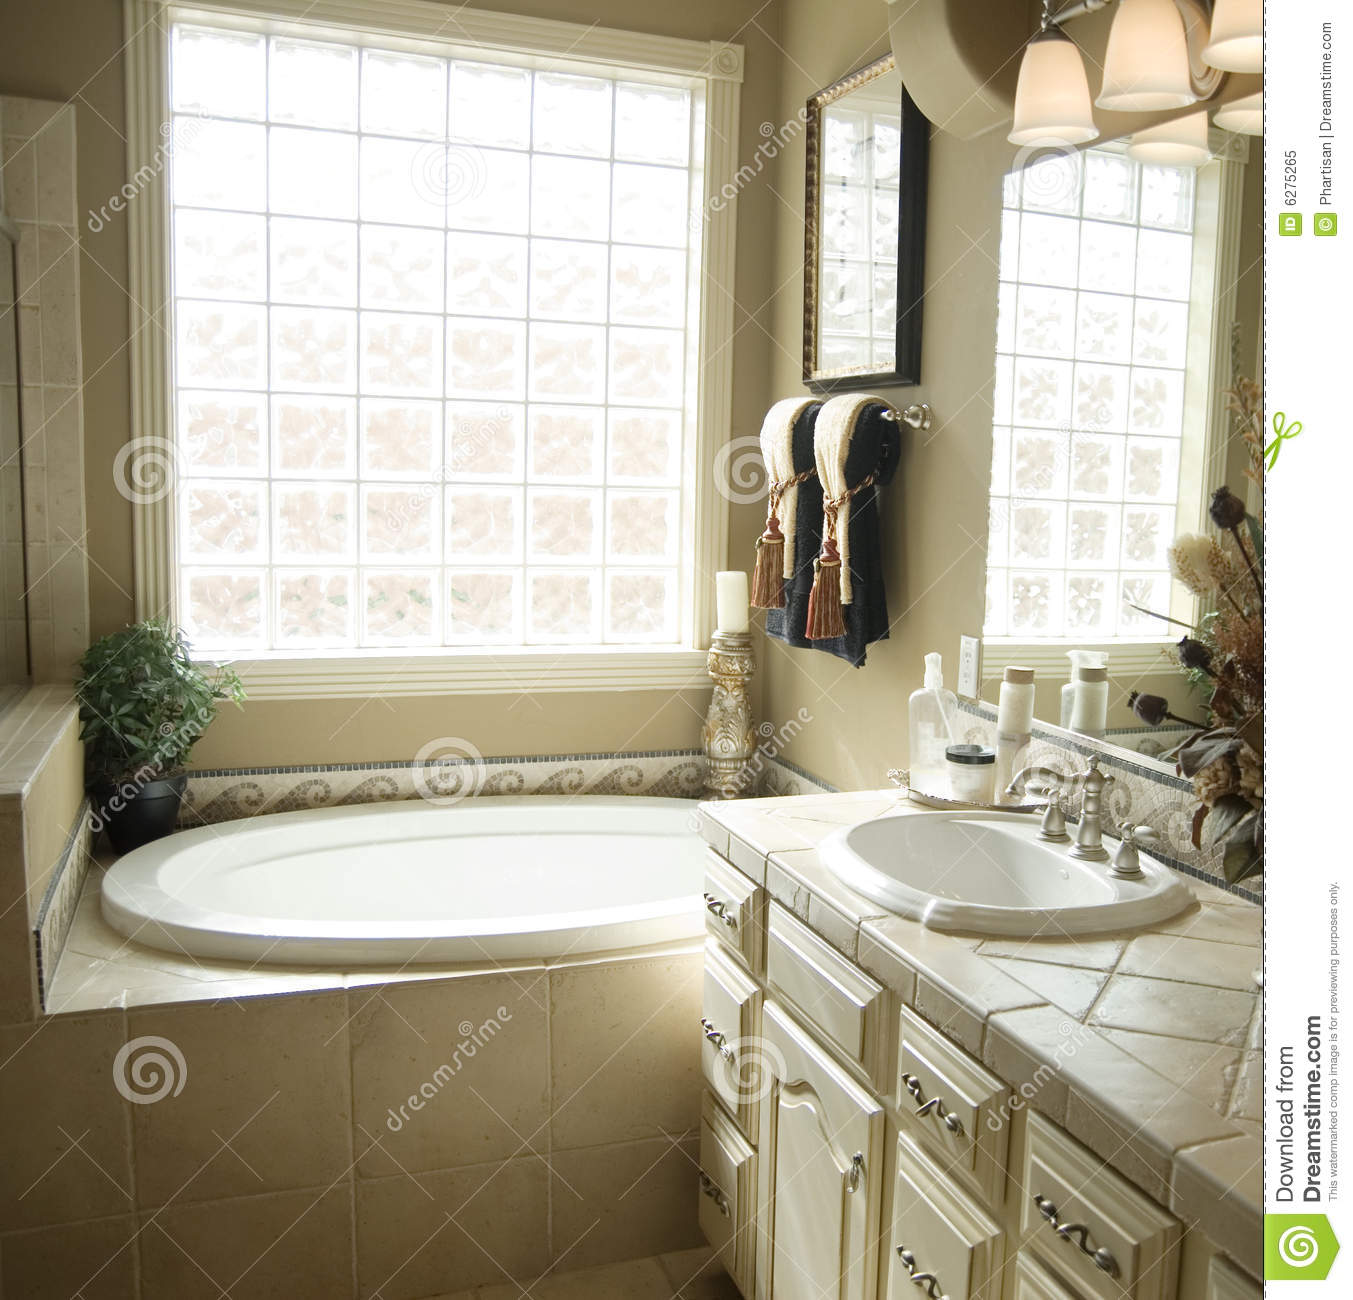 Beautiful bathroom interior design stock image image for Bathroom interior design photos